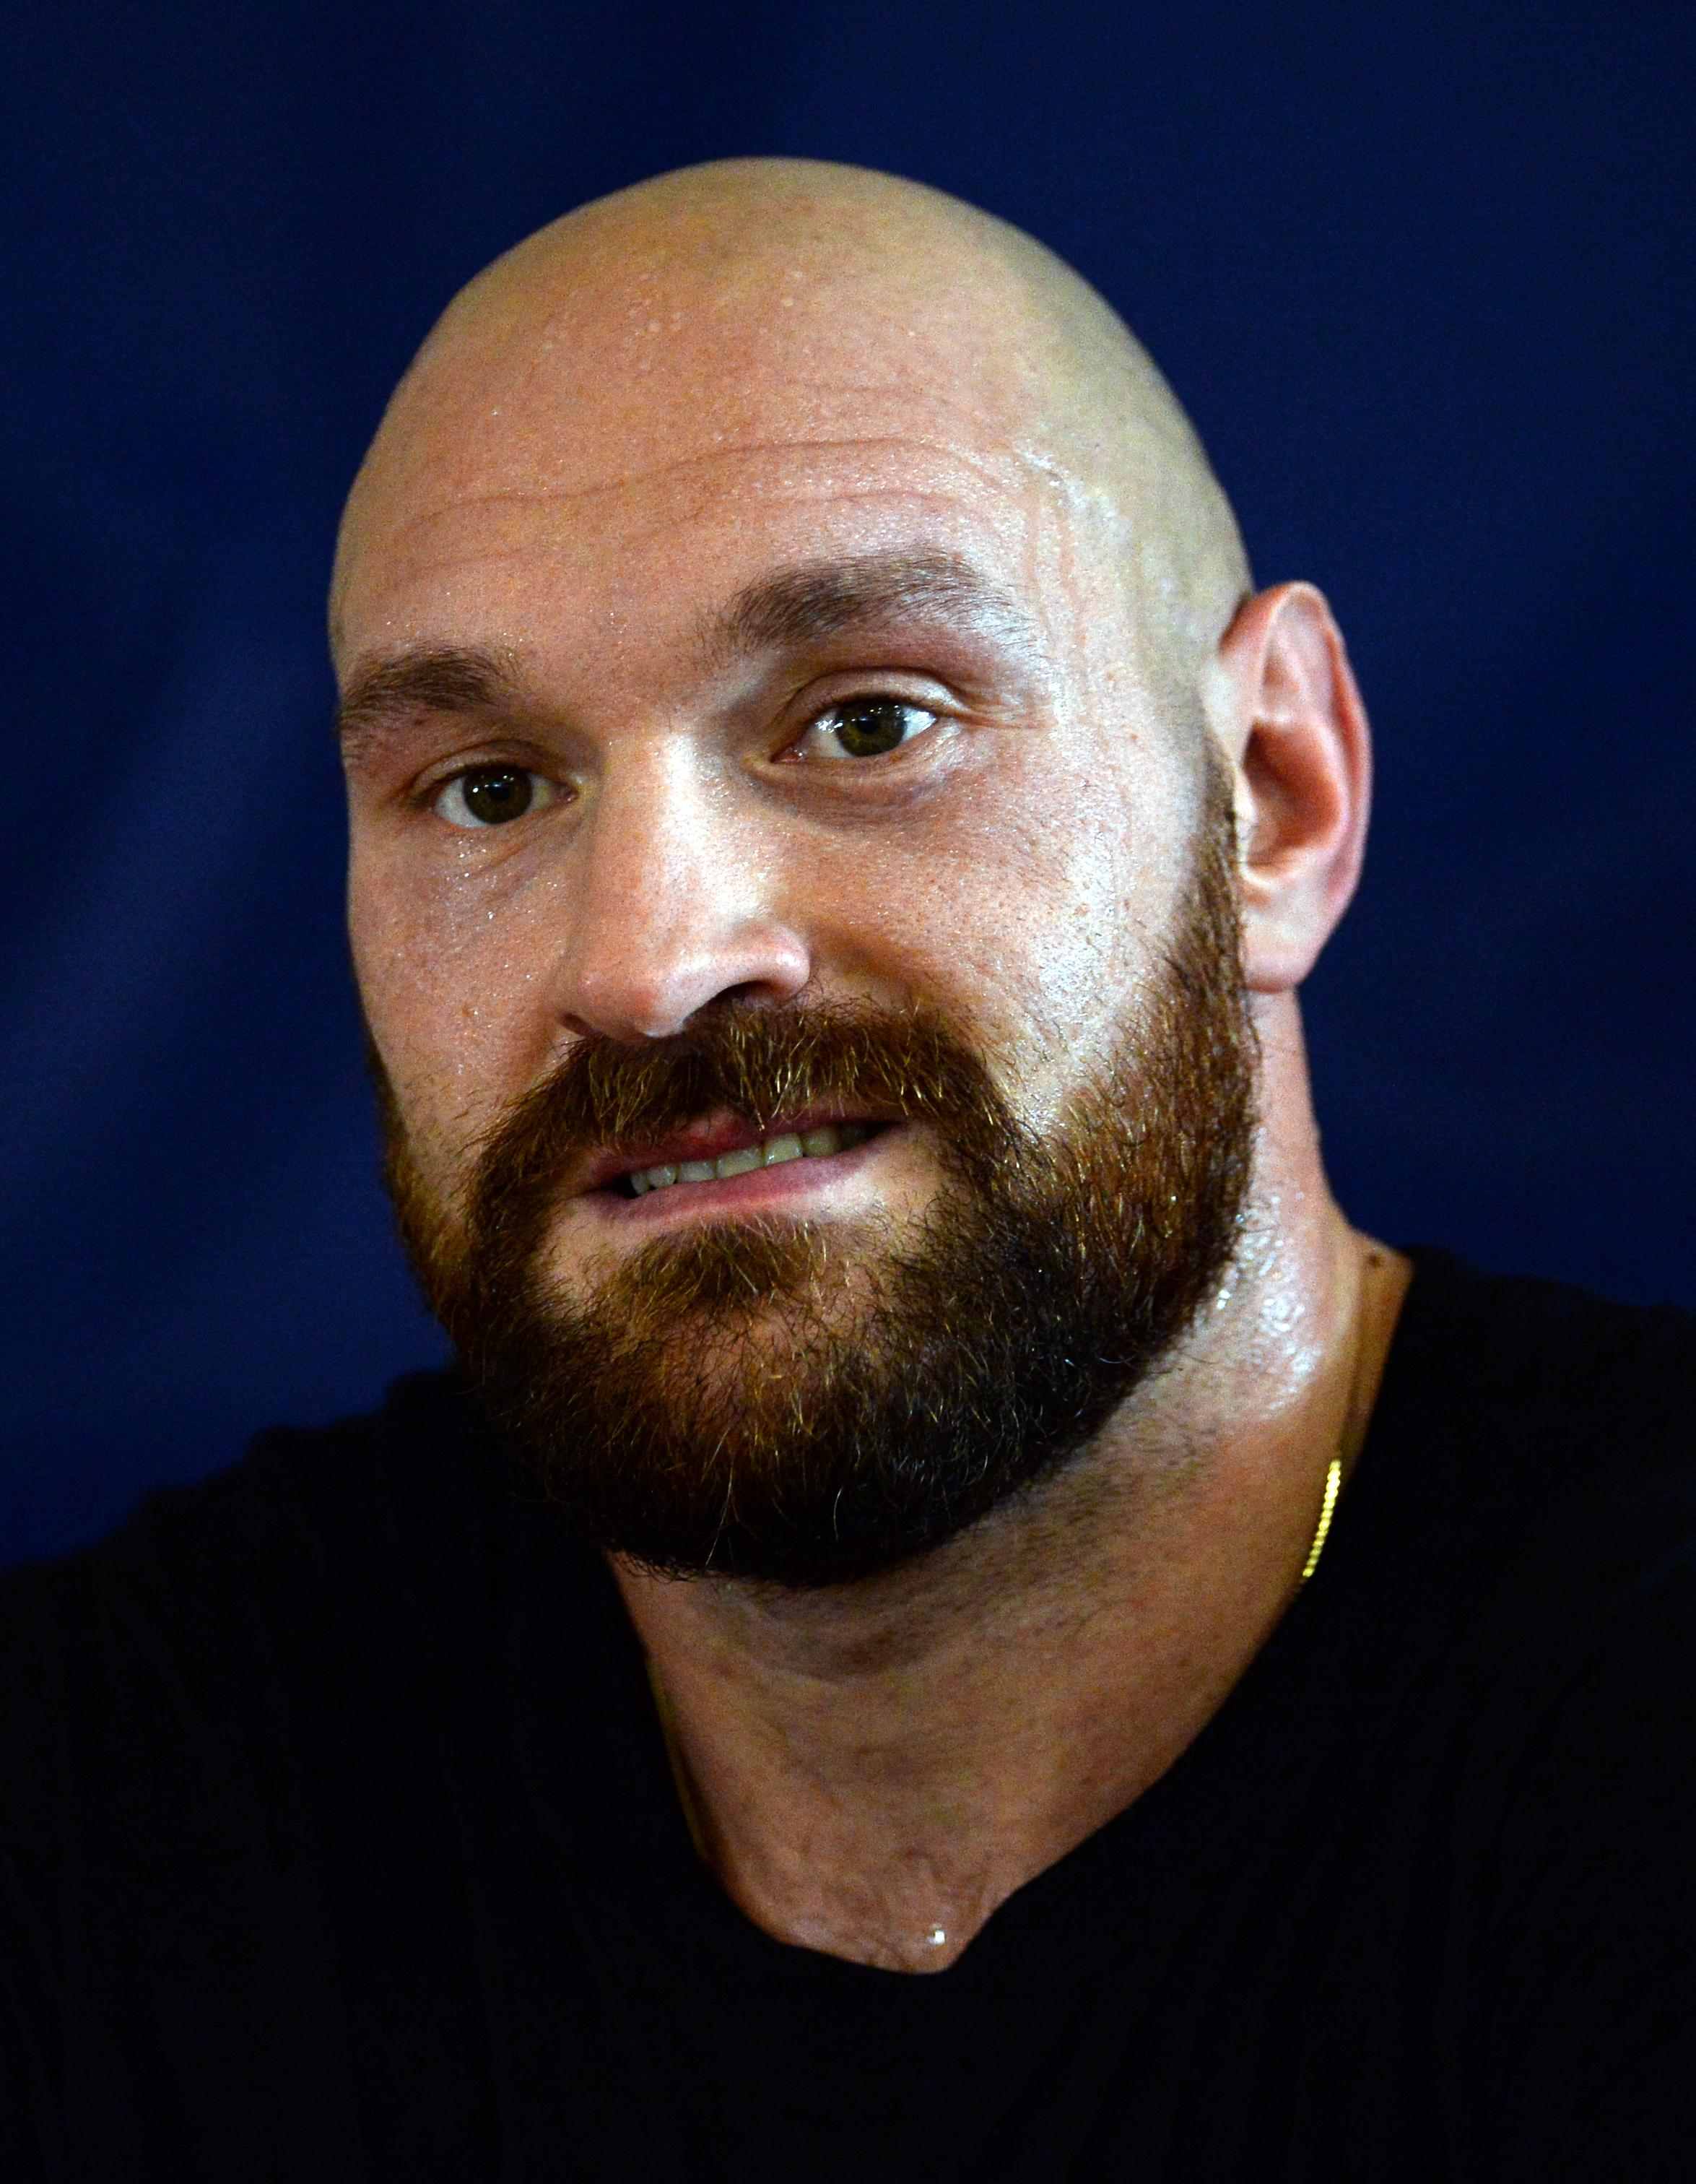 Tyson Fury has accepted the challenge to fight the WBC heavyweight champ